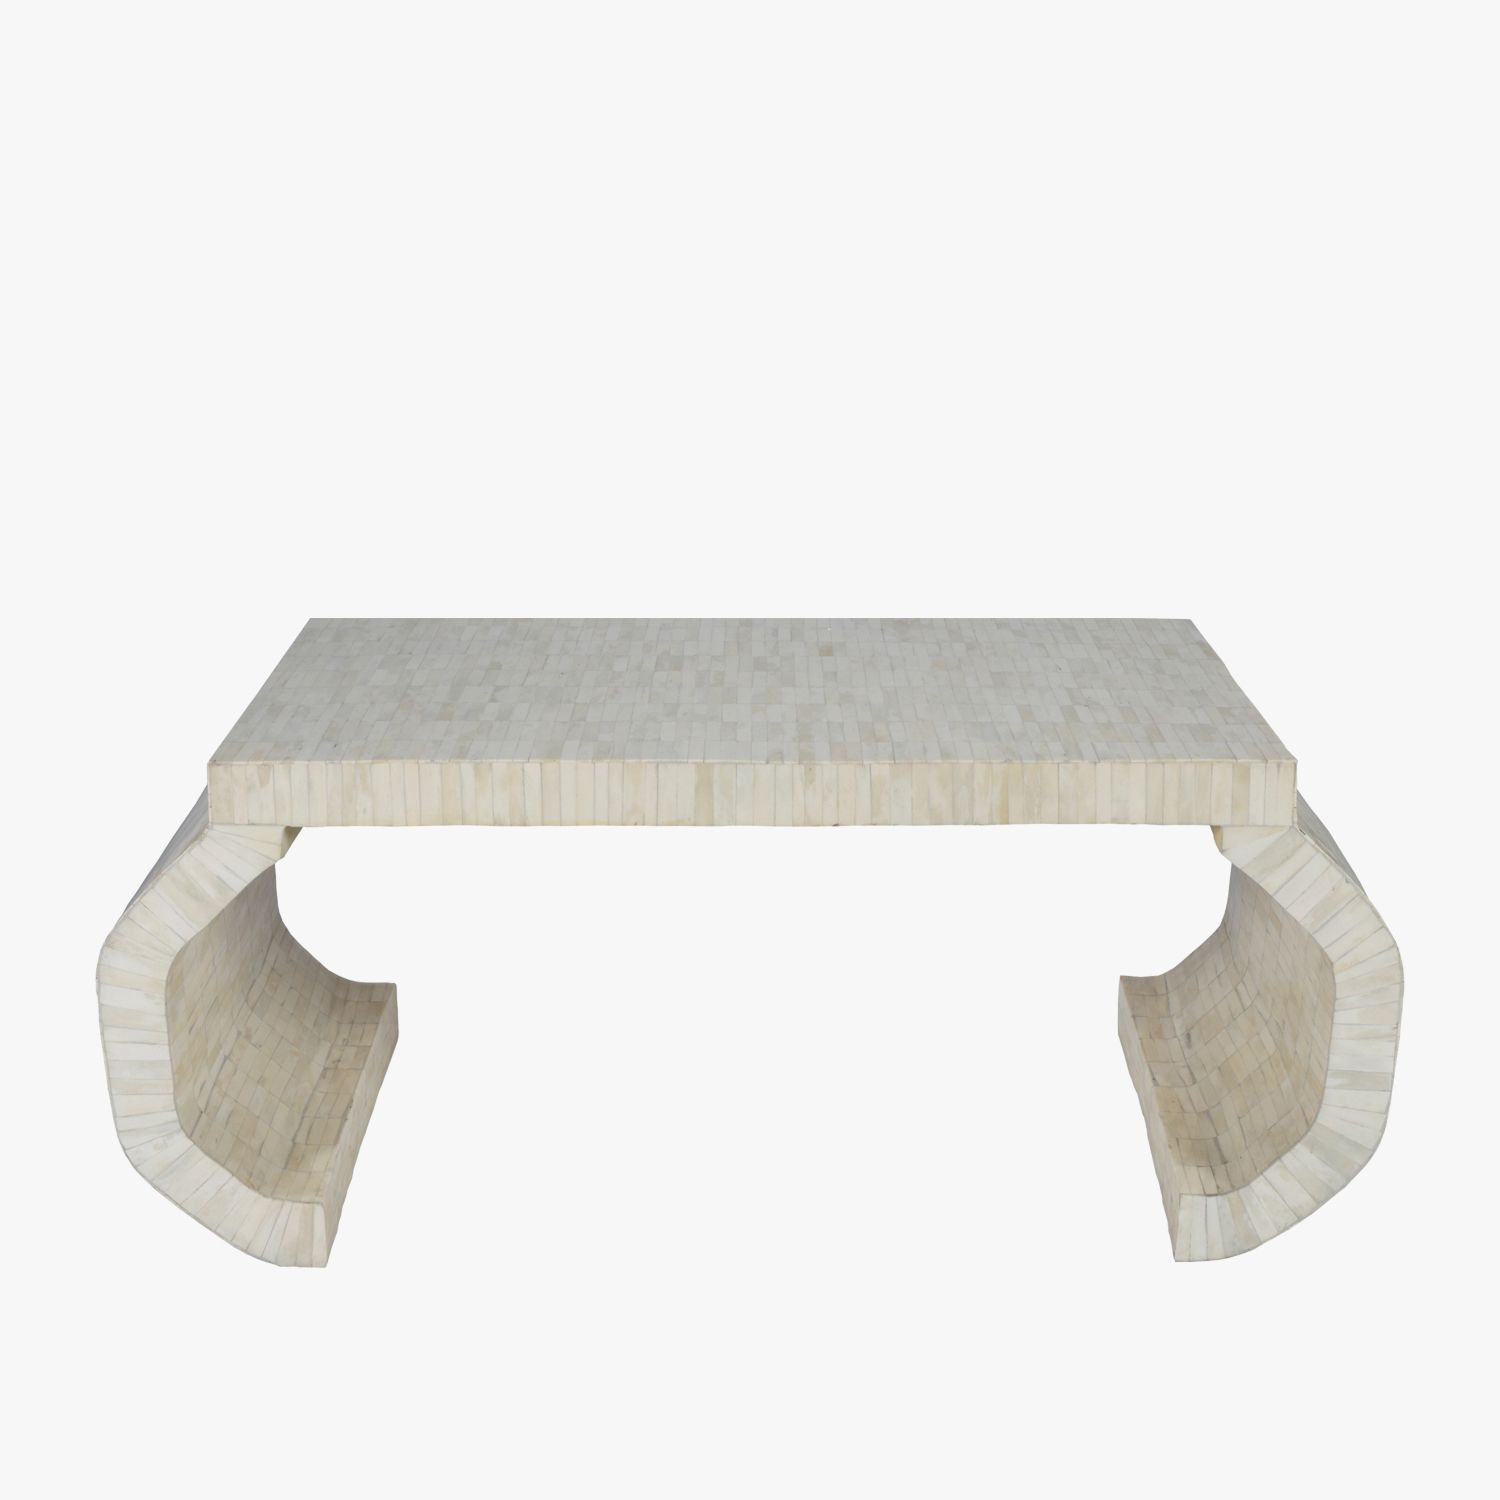 Our Livingston Inlay Coffee Table Features Natural Bone In A Striking Brick Pattern With Its Faceted Legs This Burled Wood Burled Wood Furniture Coffee Table [ 1500 x 1500 Pixel ]